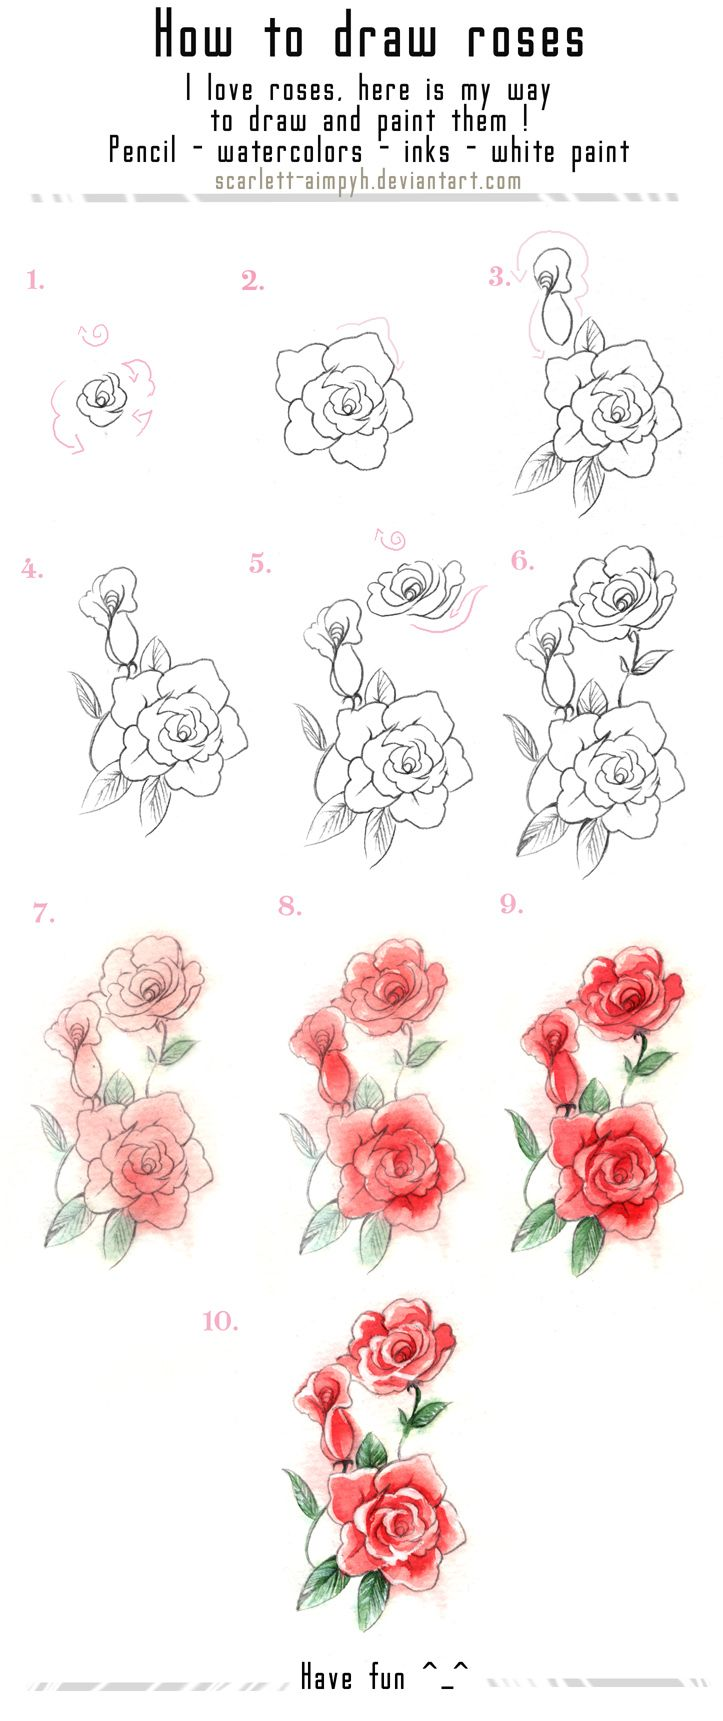 122 - Draw and paint roses by Scarlett-Aimpyh.d... on @deviantART